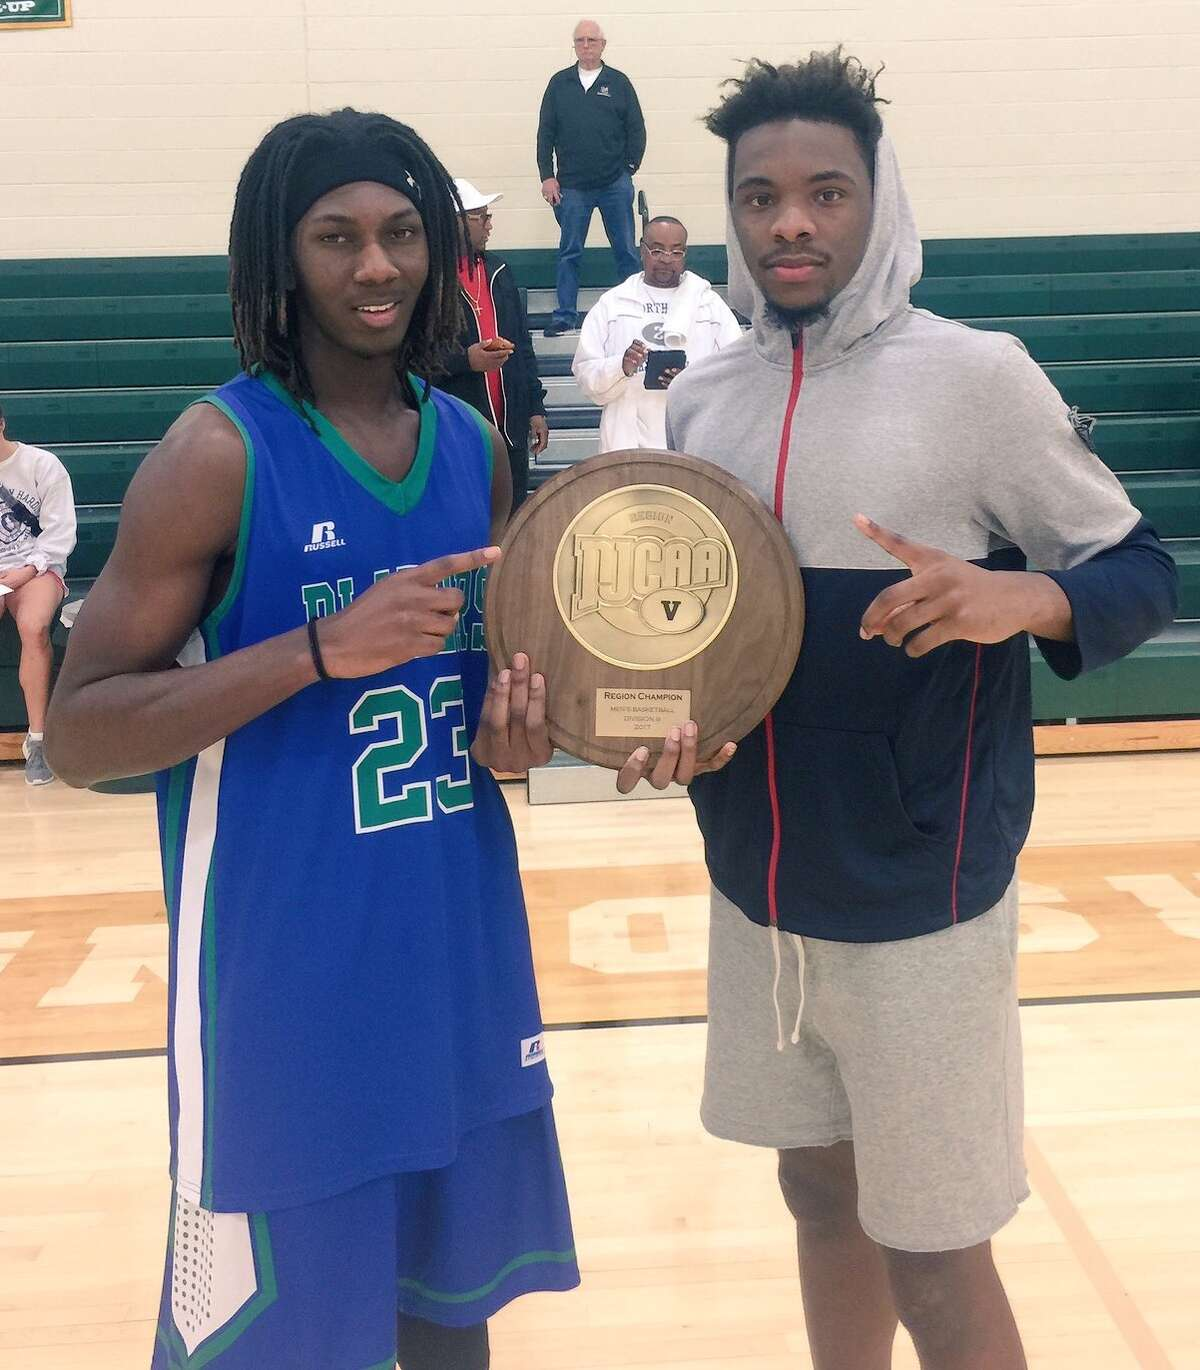 Conroe High School graduates Tremont Moore, left, and Marcus Keyser pose with the NJCAA Region V Division III championship plaque this past weekend.